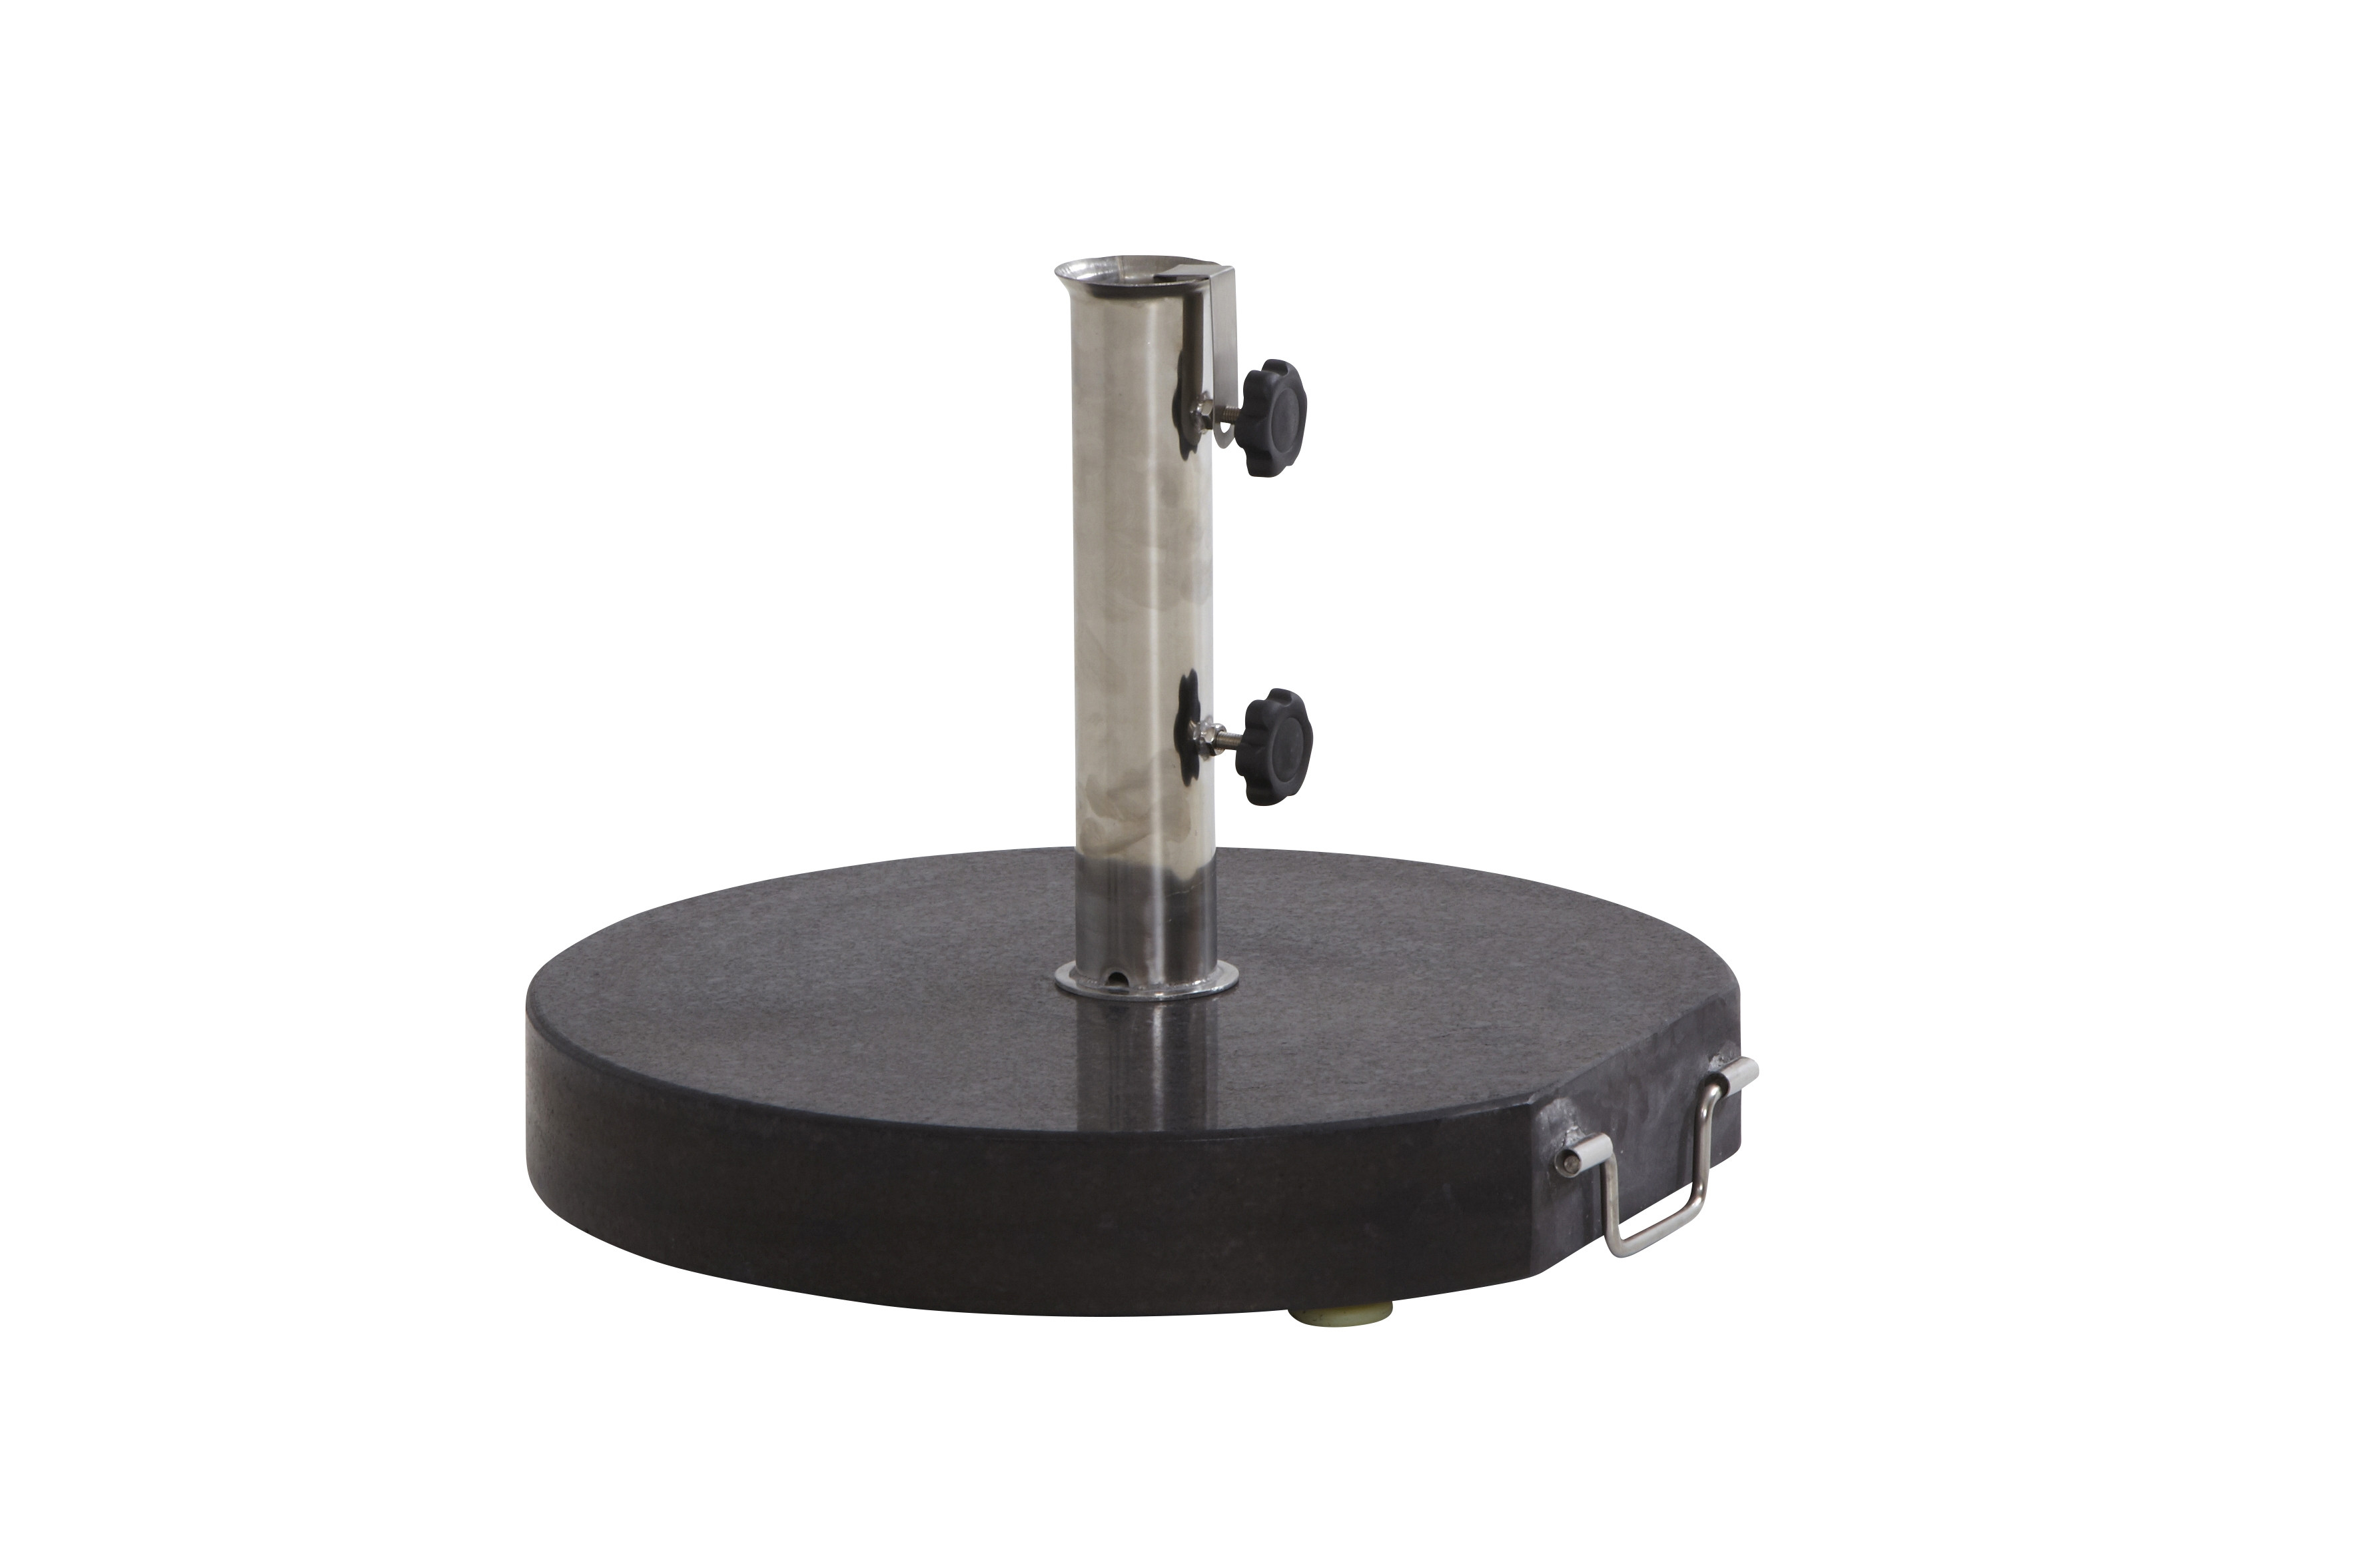 Granite base with handle 40 kgs. Round